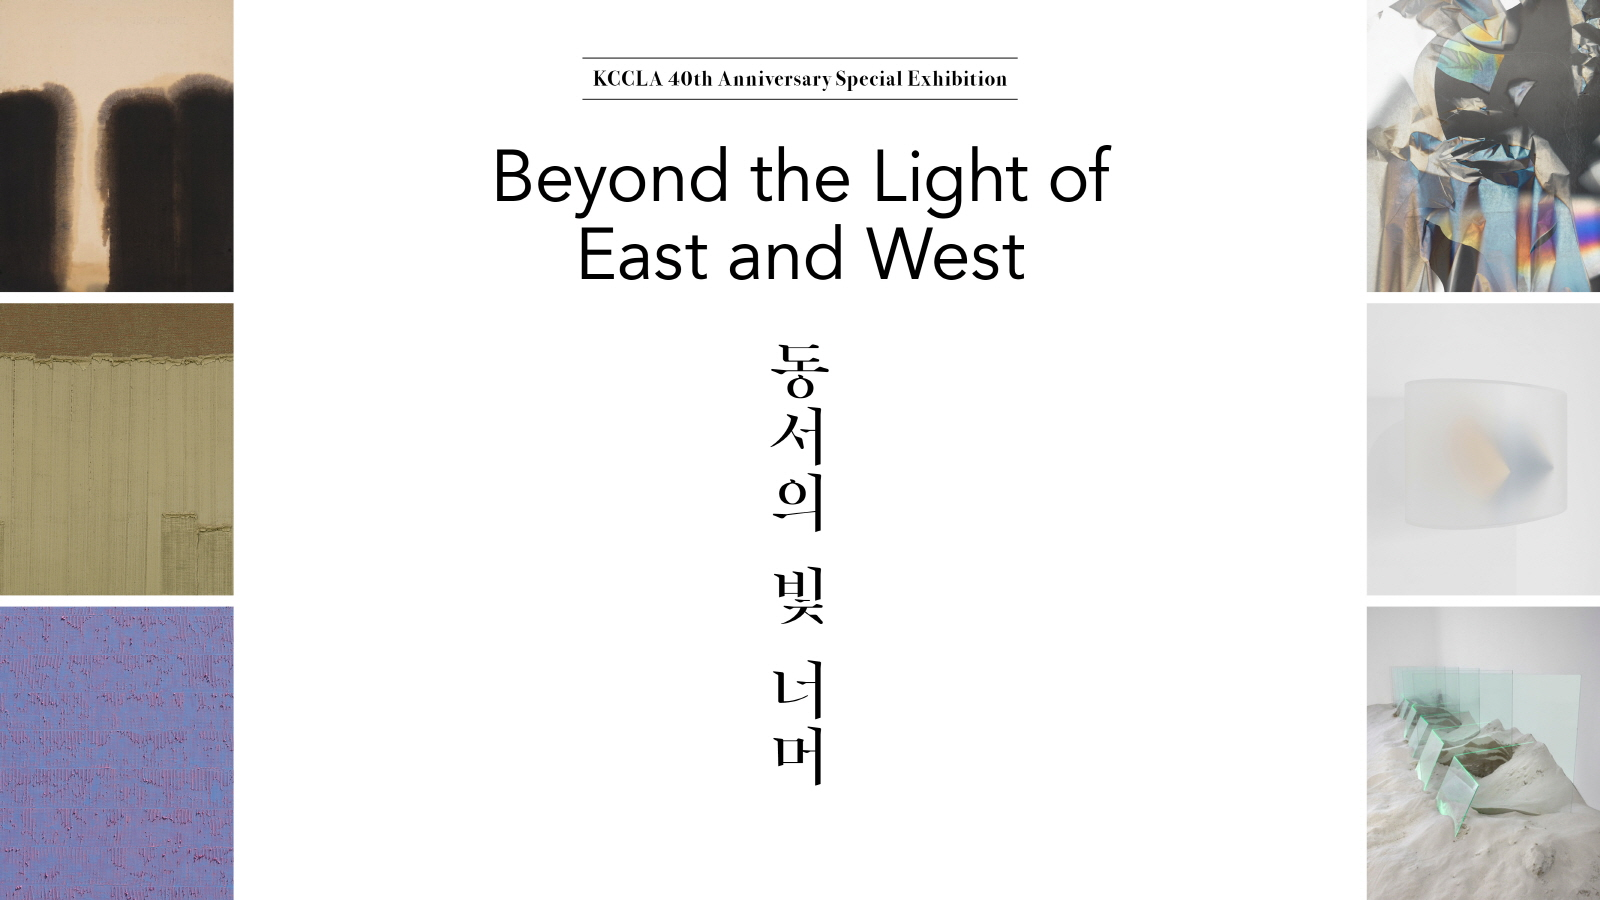 Special Exhibition: Beyond the Light of East and West